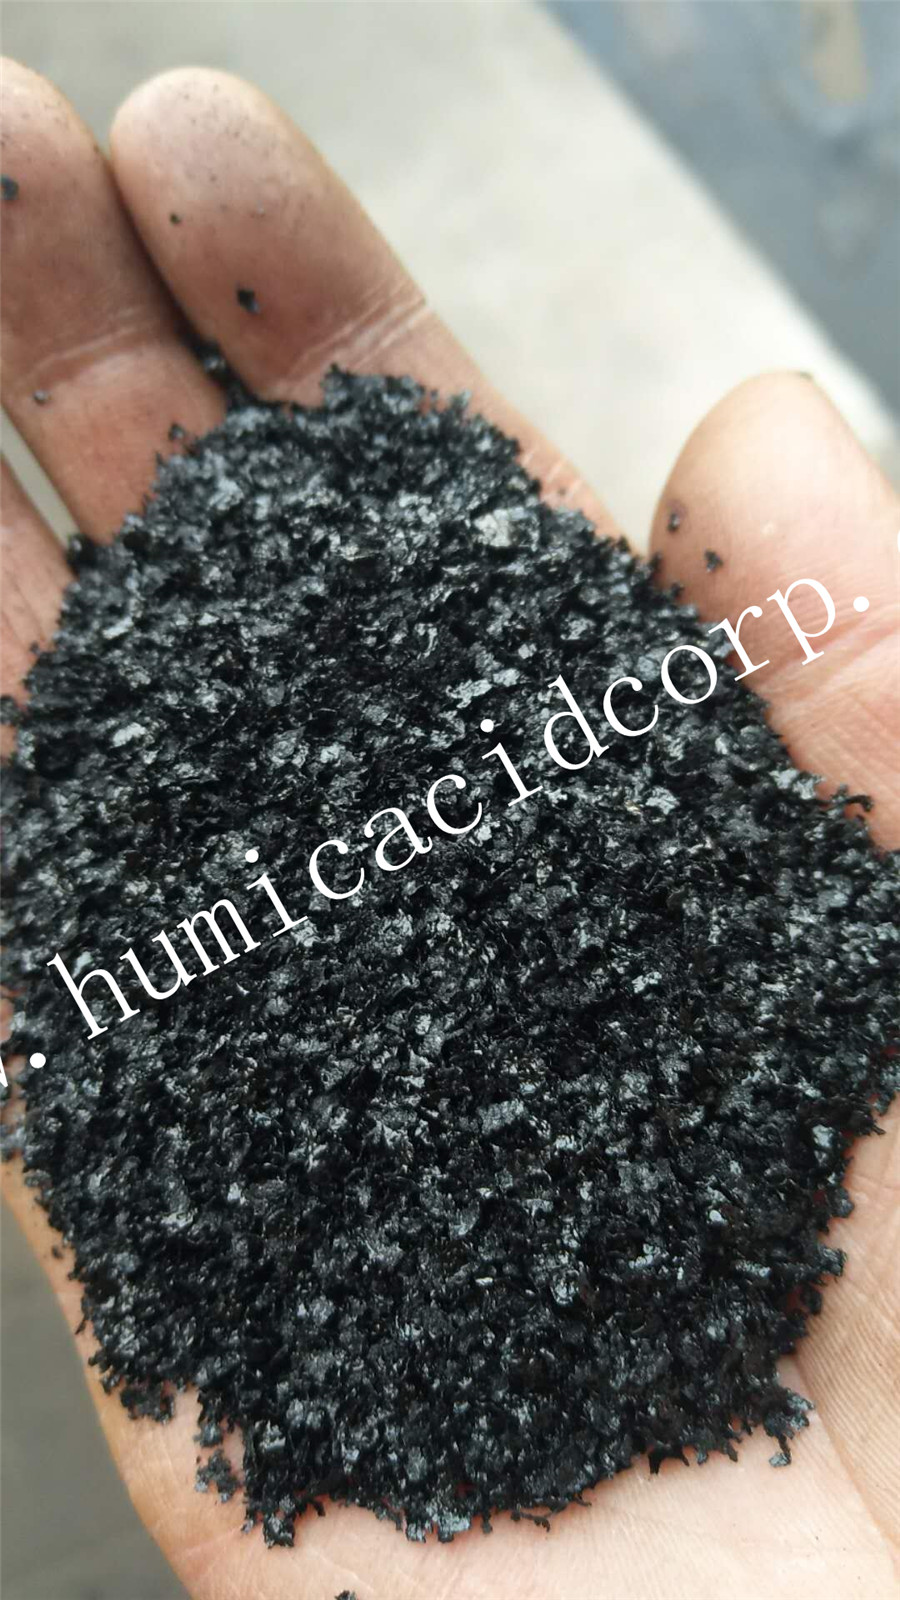 Super Potassium Humate big Flakes